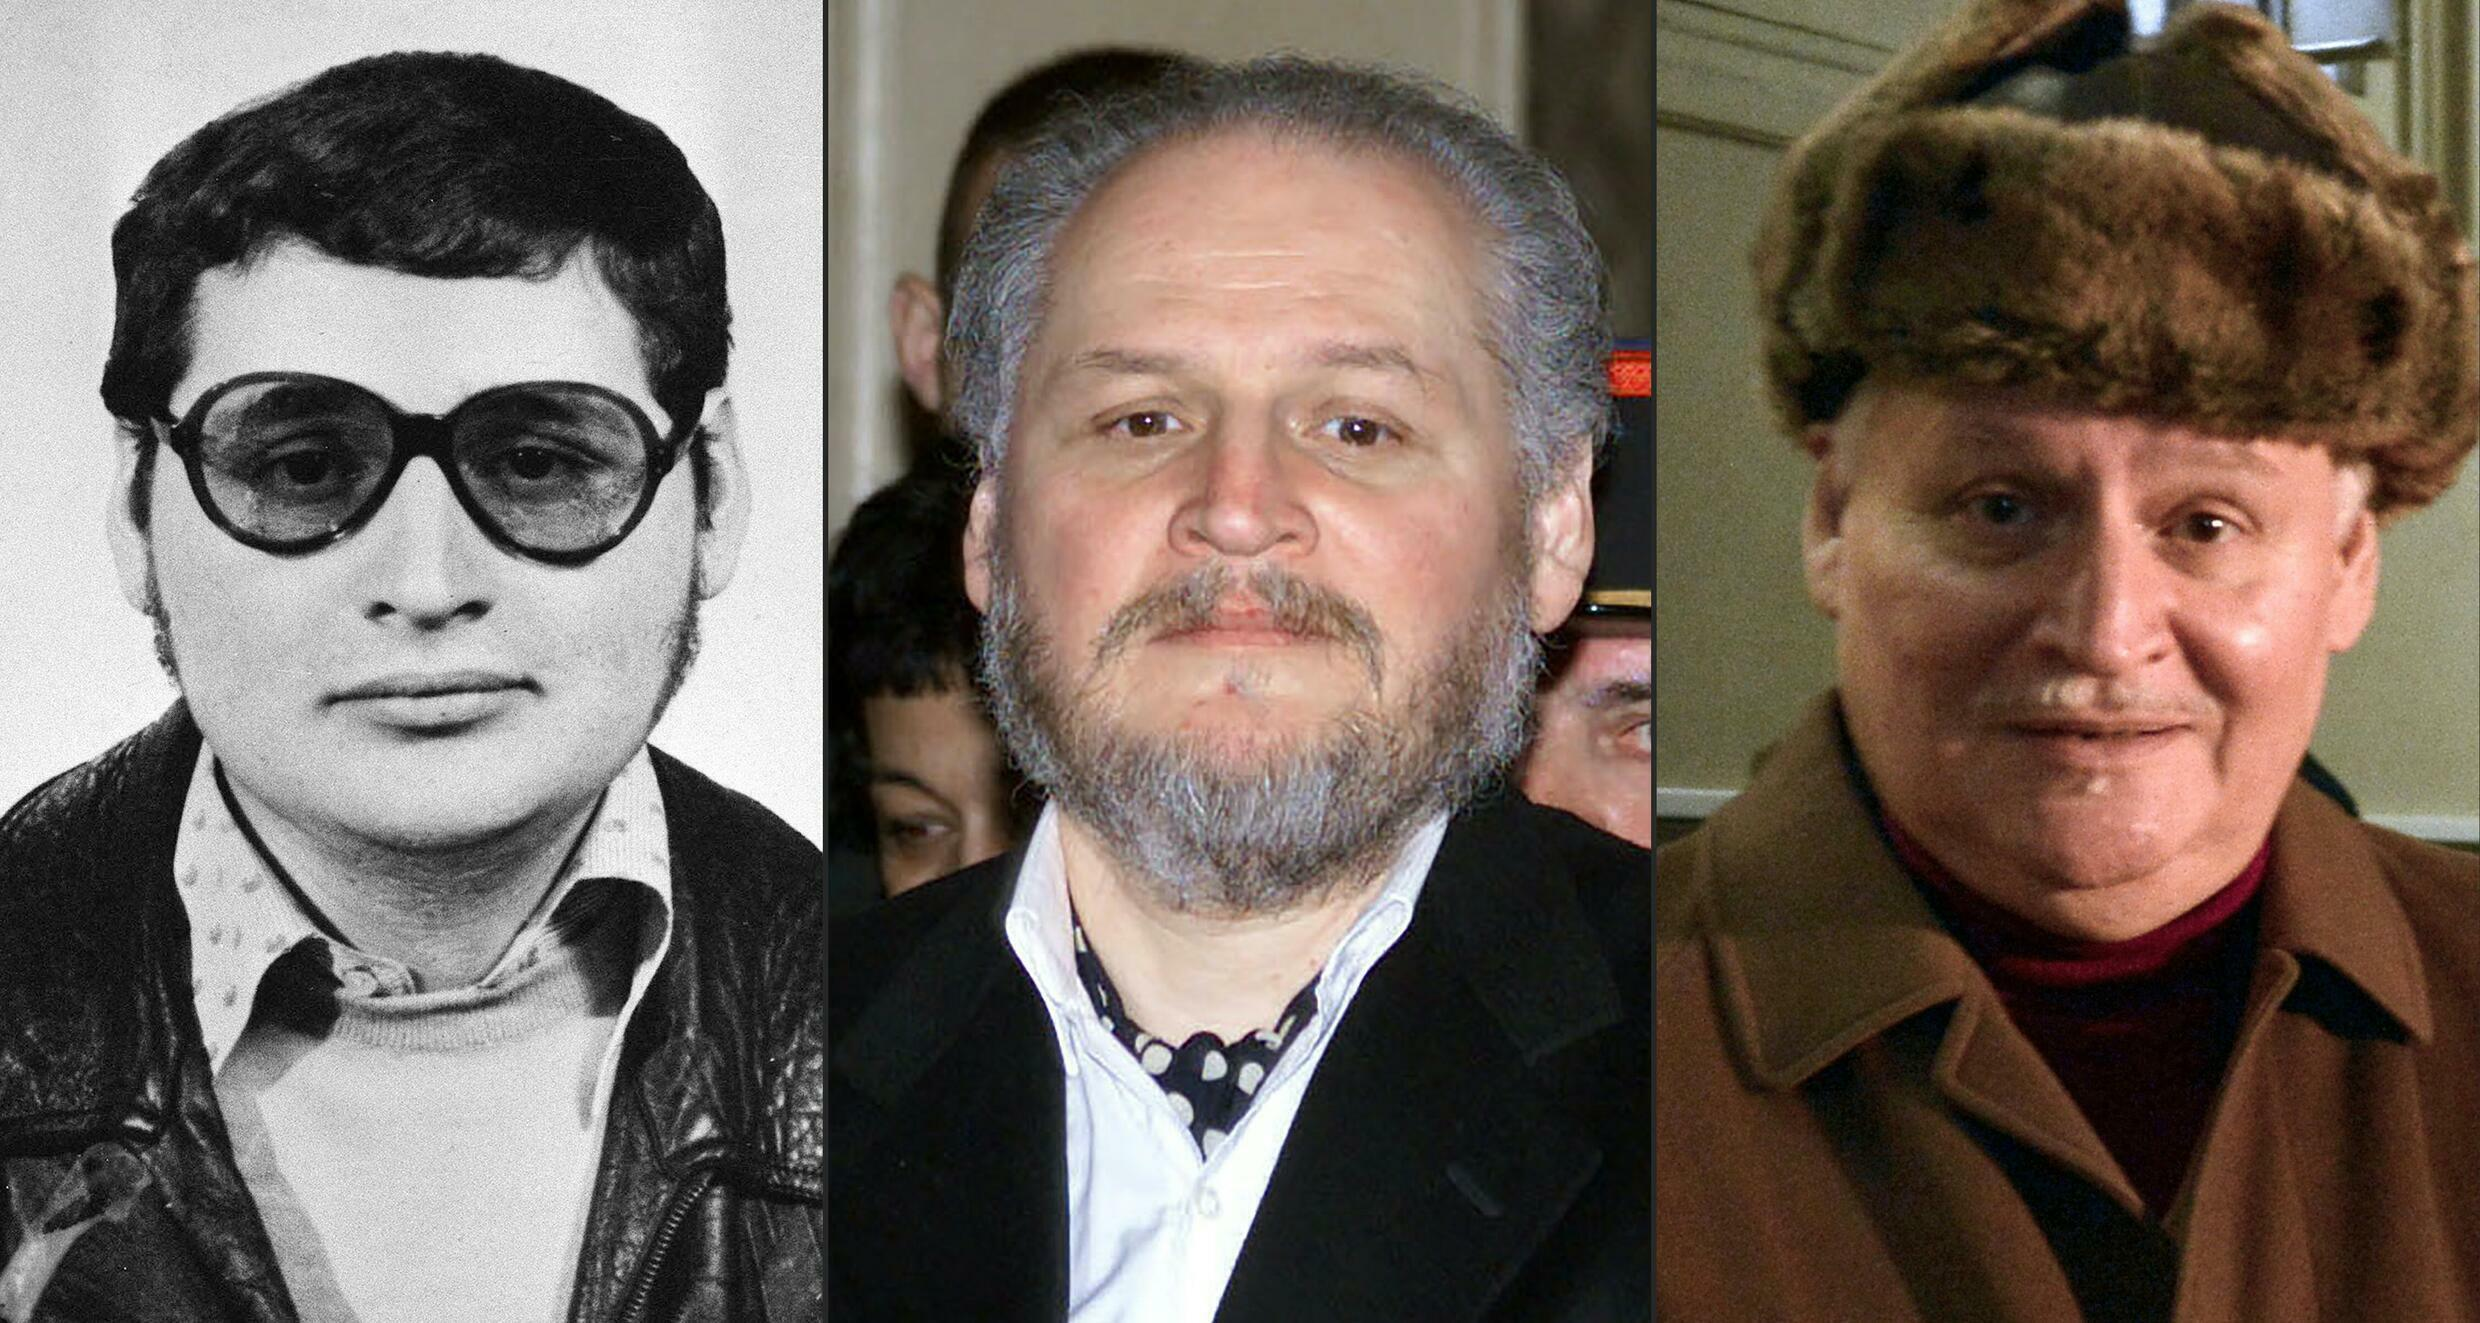 Self-styled revolutionary Carlos the Jackal, already serving two life terms for murder, was given a third in 2017 for a deadly 1974 Paris bombing